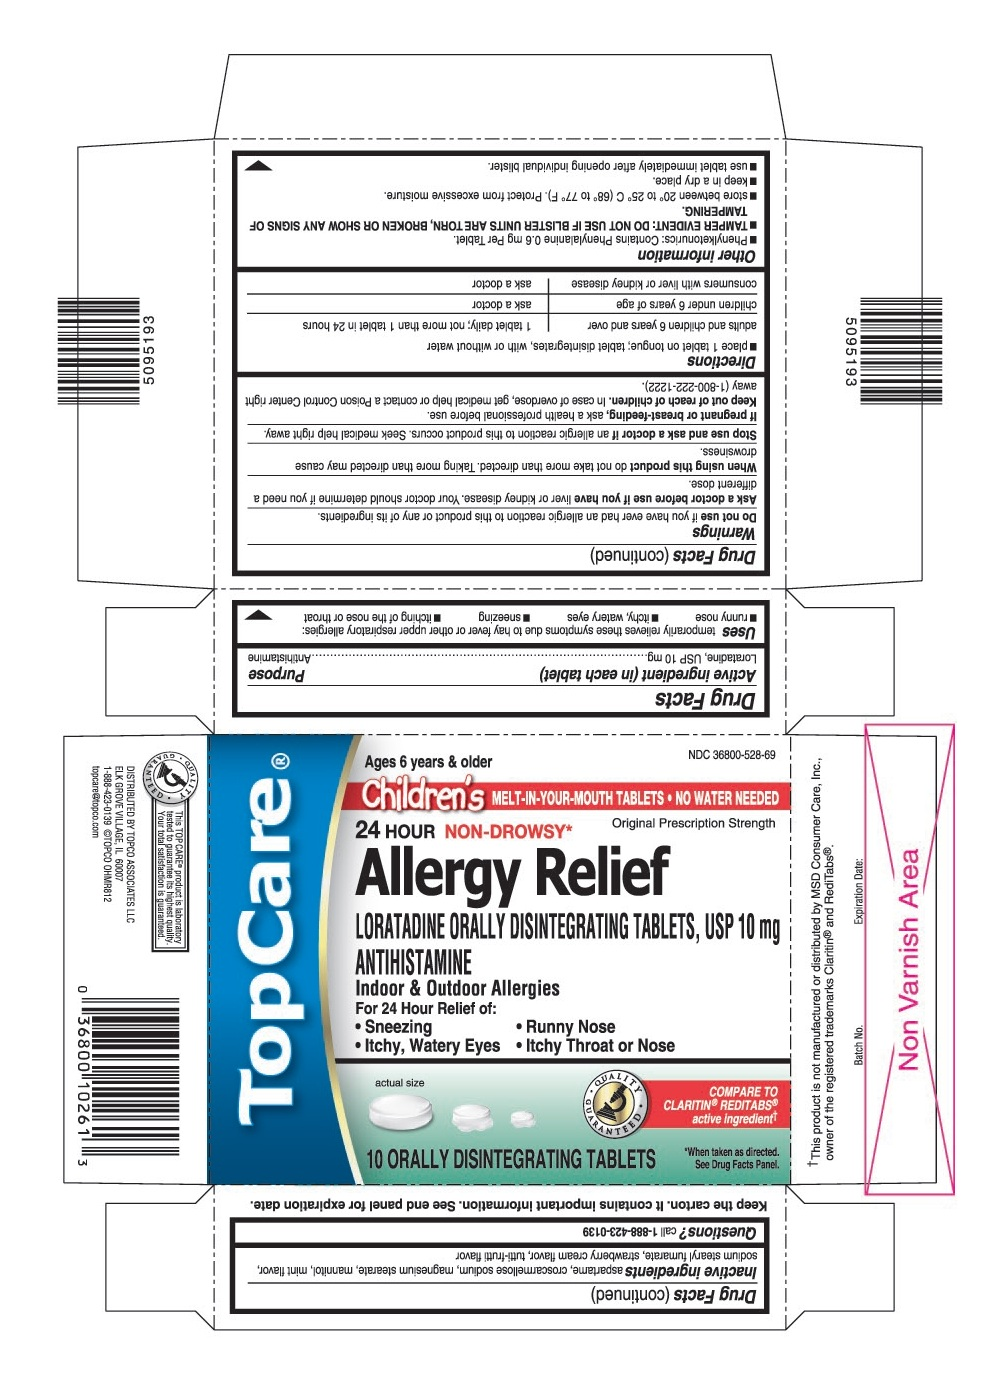 This is the 10 count blister carton label for TopCare Loratadine ODT, USP 10 mg (Children's).